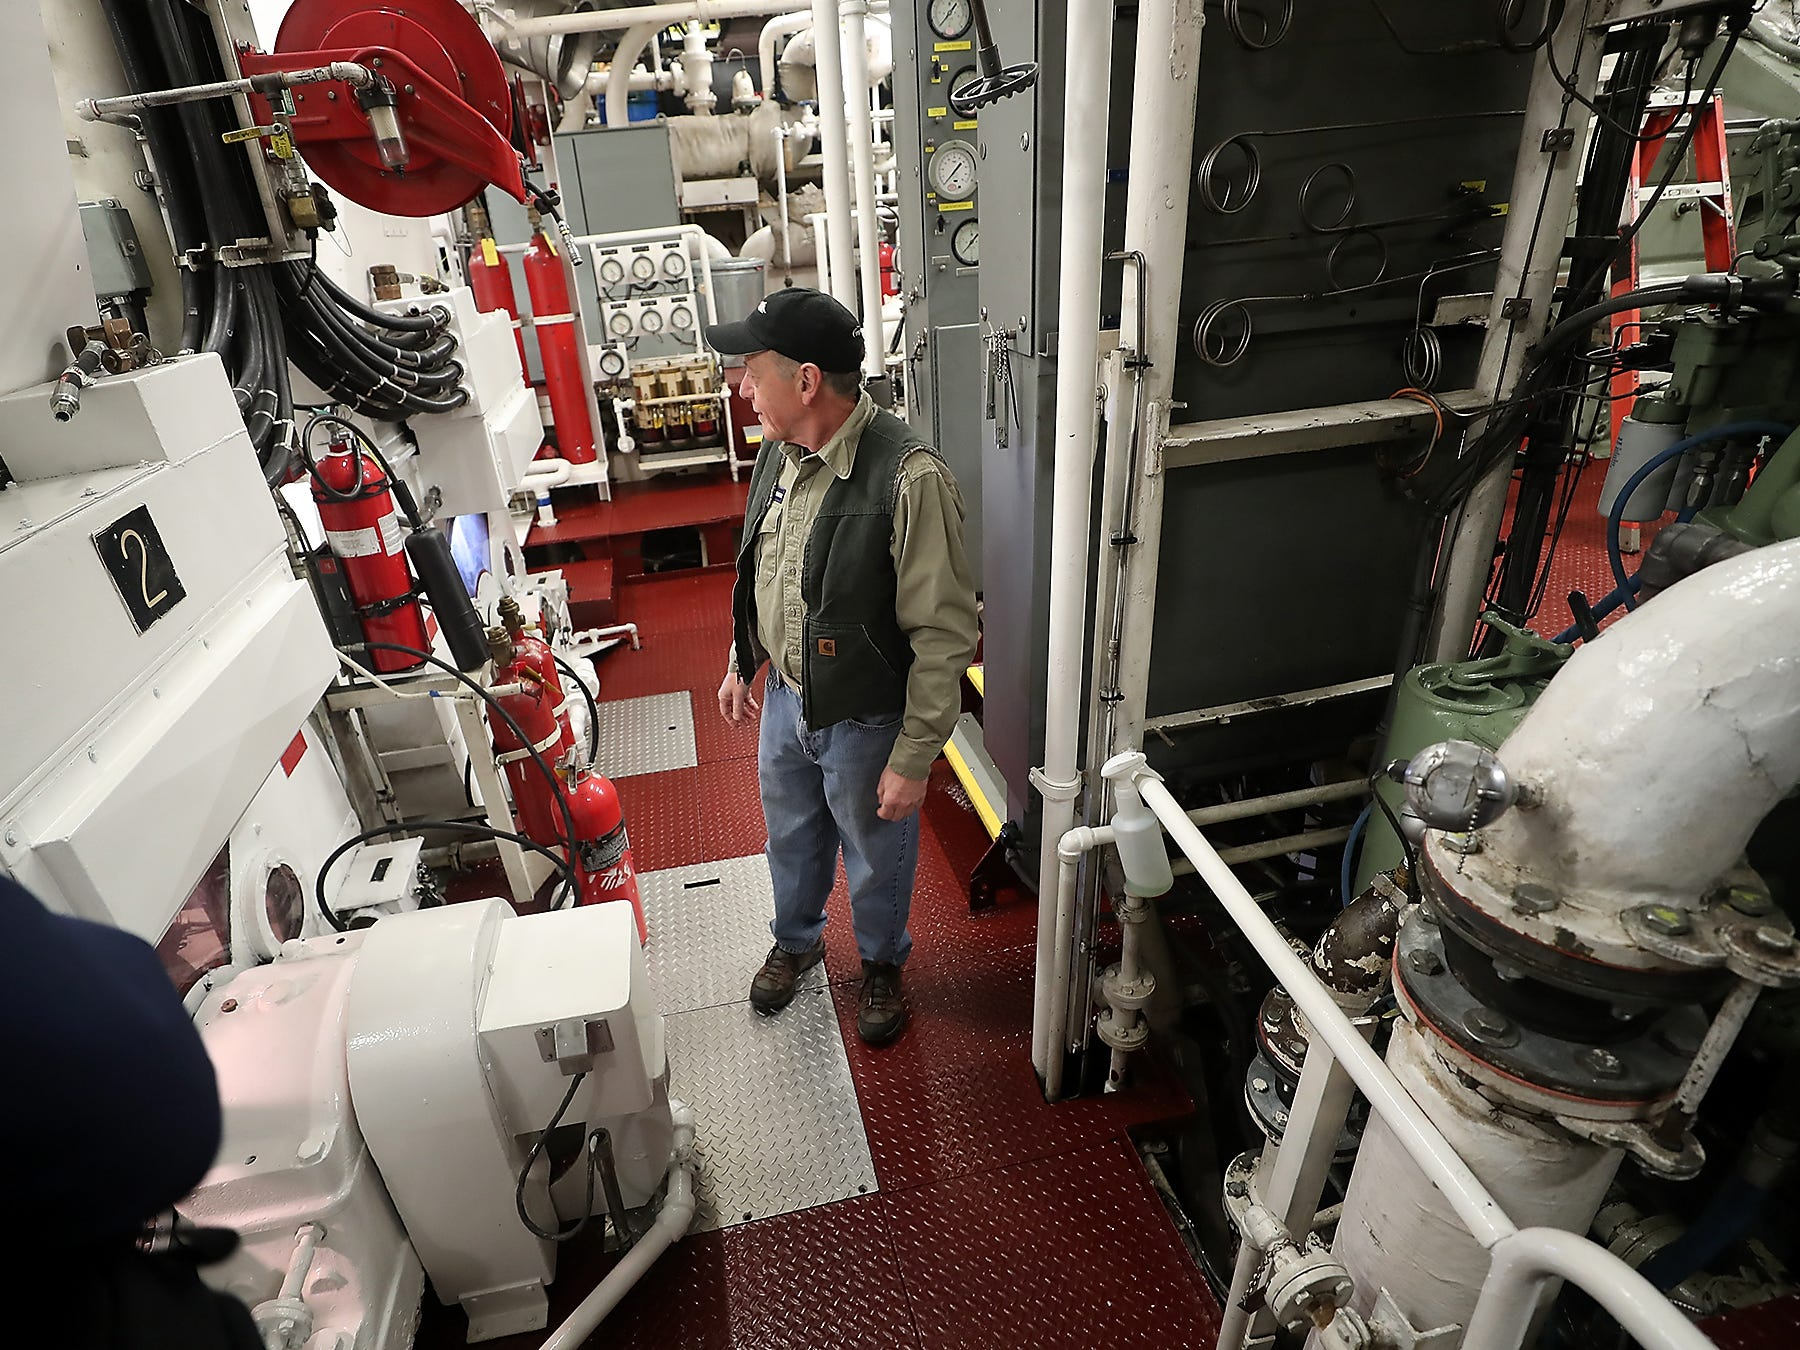 Tillikum Staff Chief Peter Miele moves through one of the engine rooms during a tour aboard the vessel at the Eagle Harbor Maintenance Facility on Bainbridge Island on Wednesday, February 27, 2019.